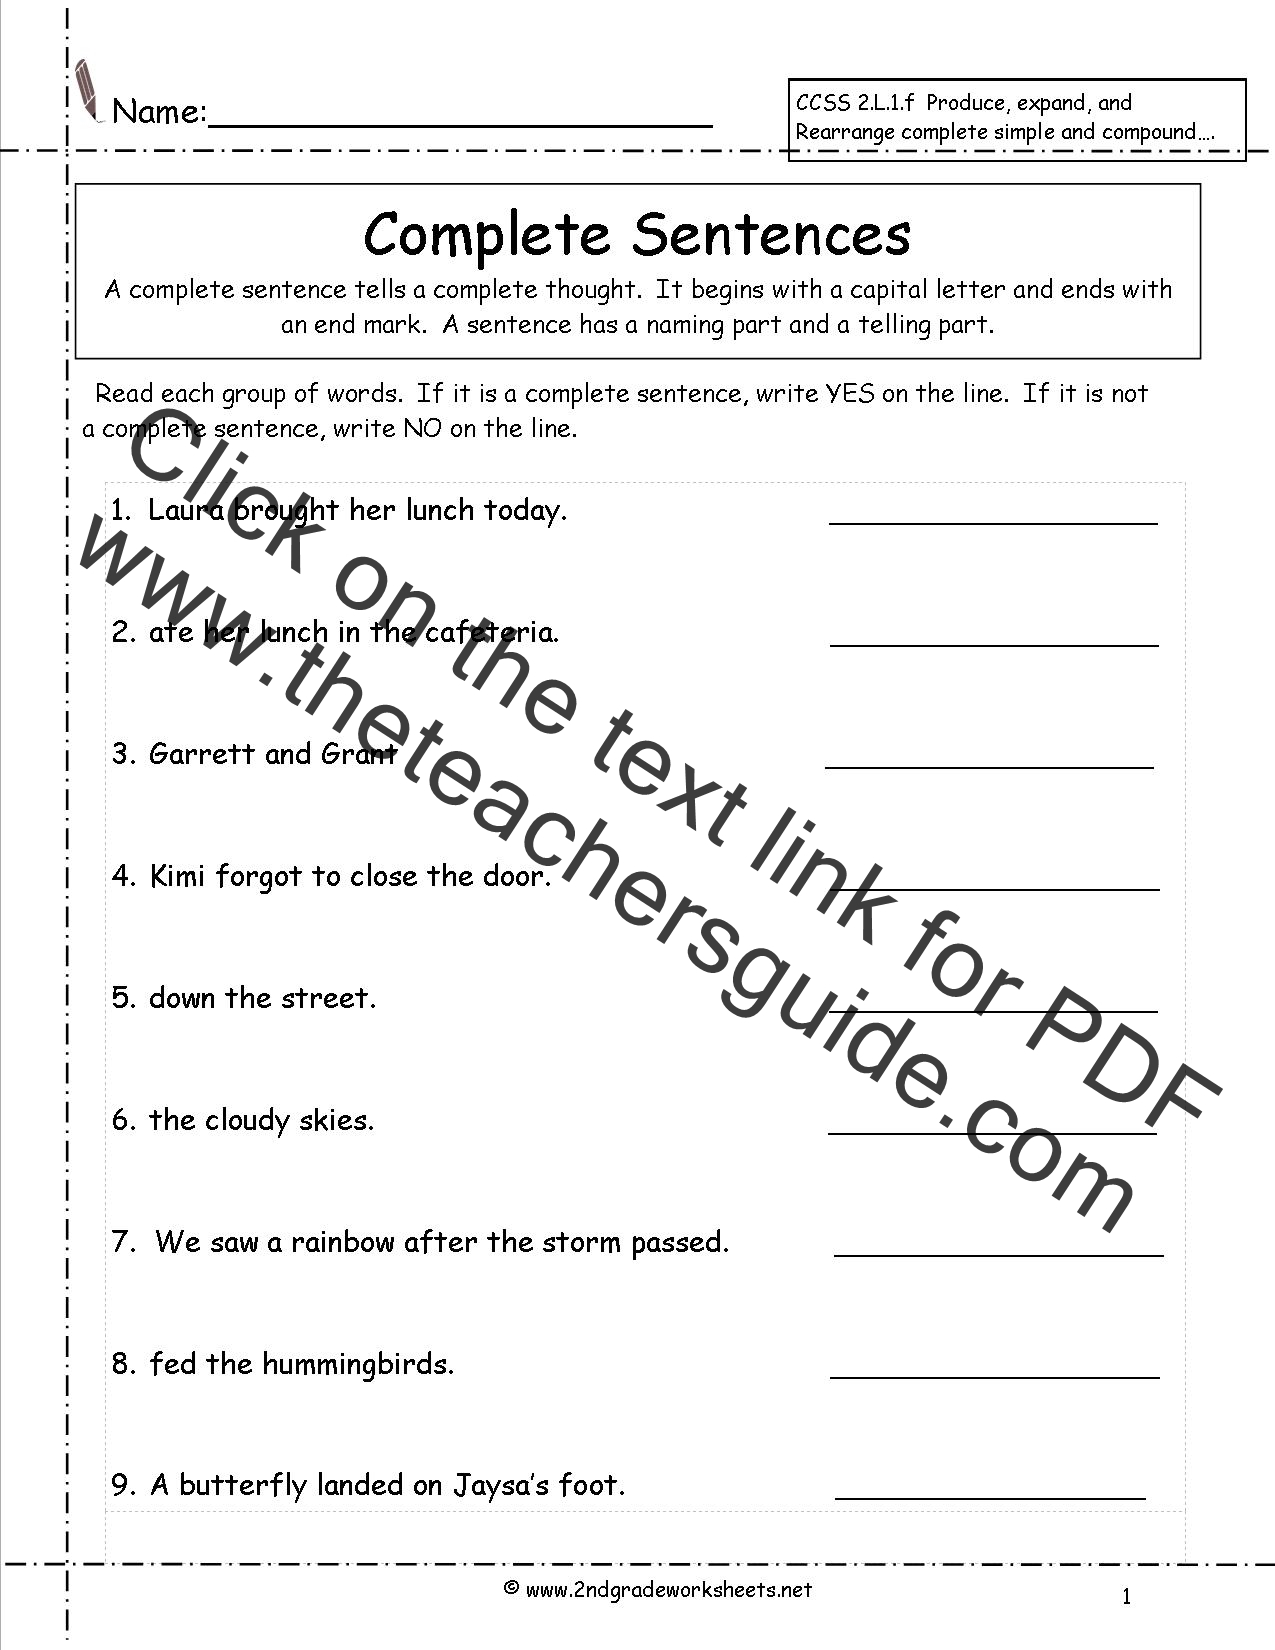 Printables 2nd Grade Sentence Worksheets second grade sentences worksheets ccss 2 l 1 f complete worksheets